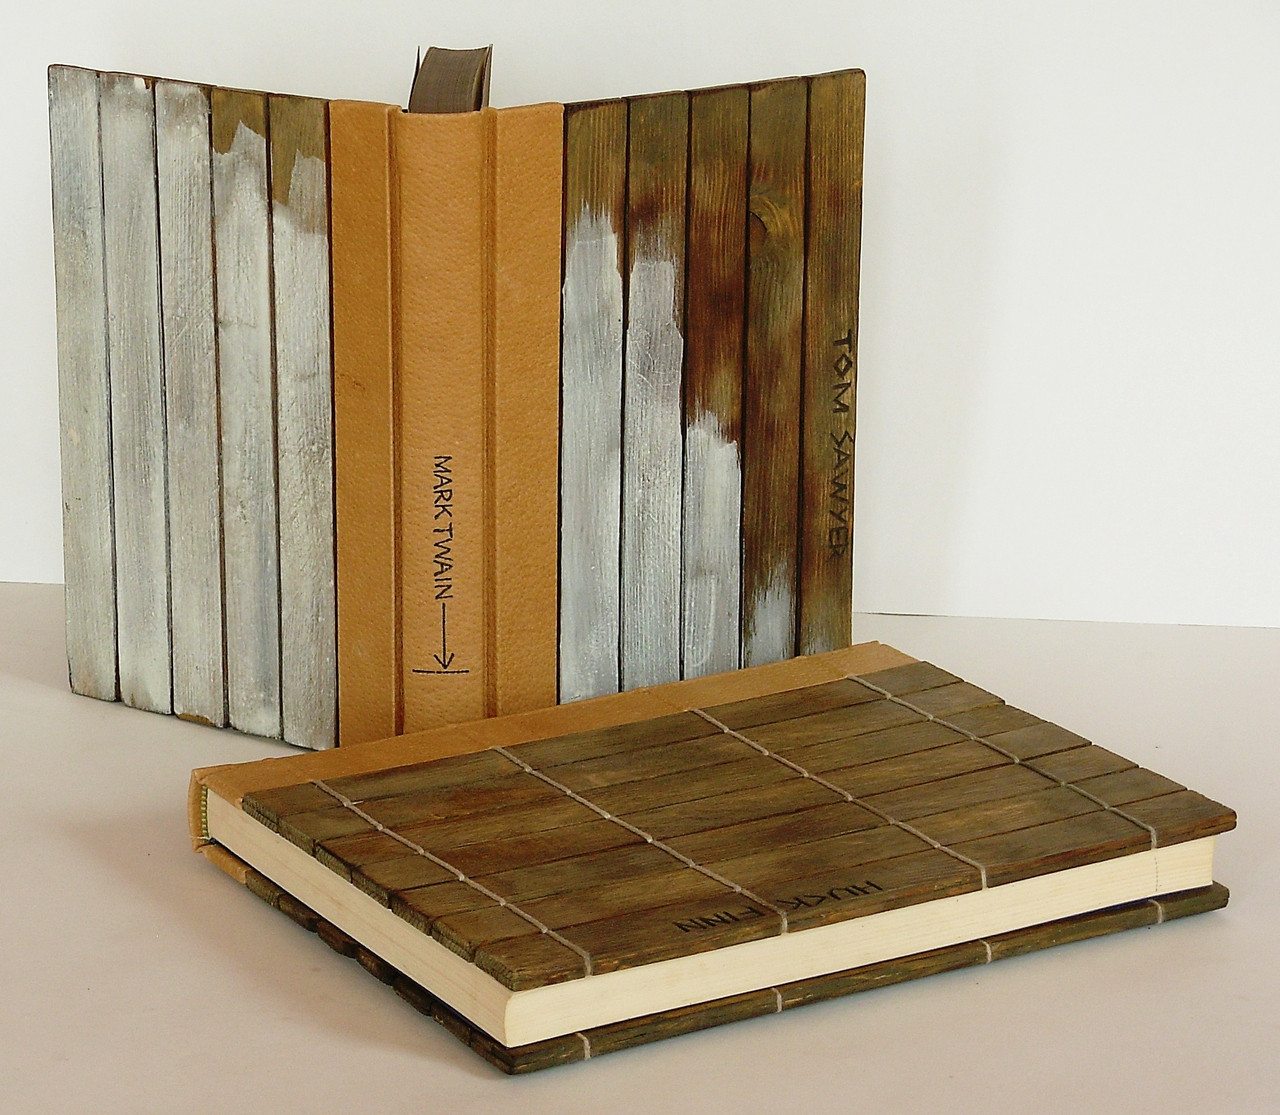 Huck Finn & Tom Sawyer by Mark Twain, 2 Volumes, Bindings by Richard Tuttle